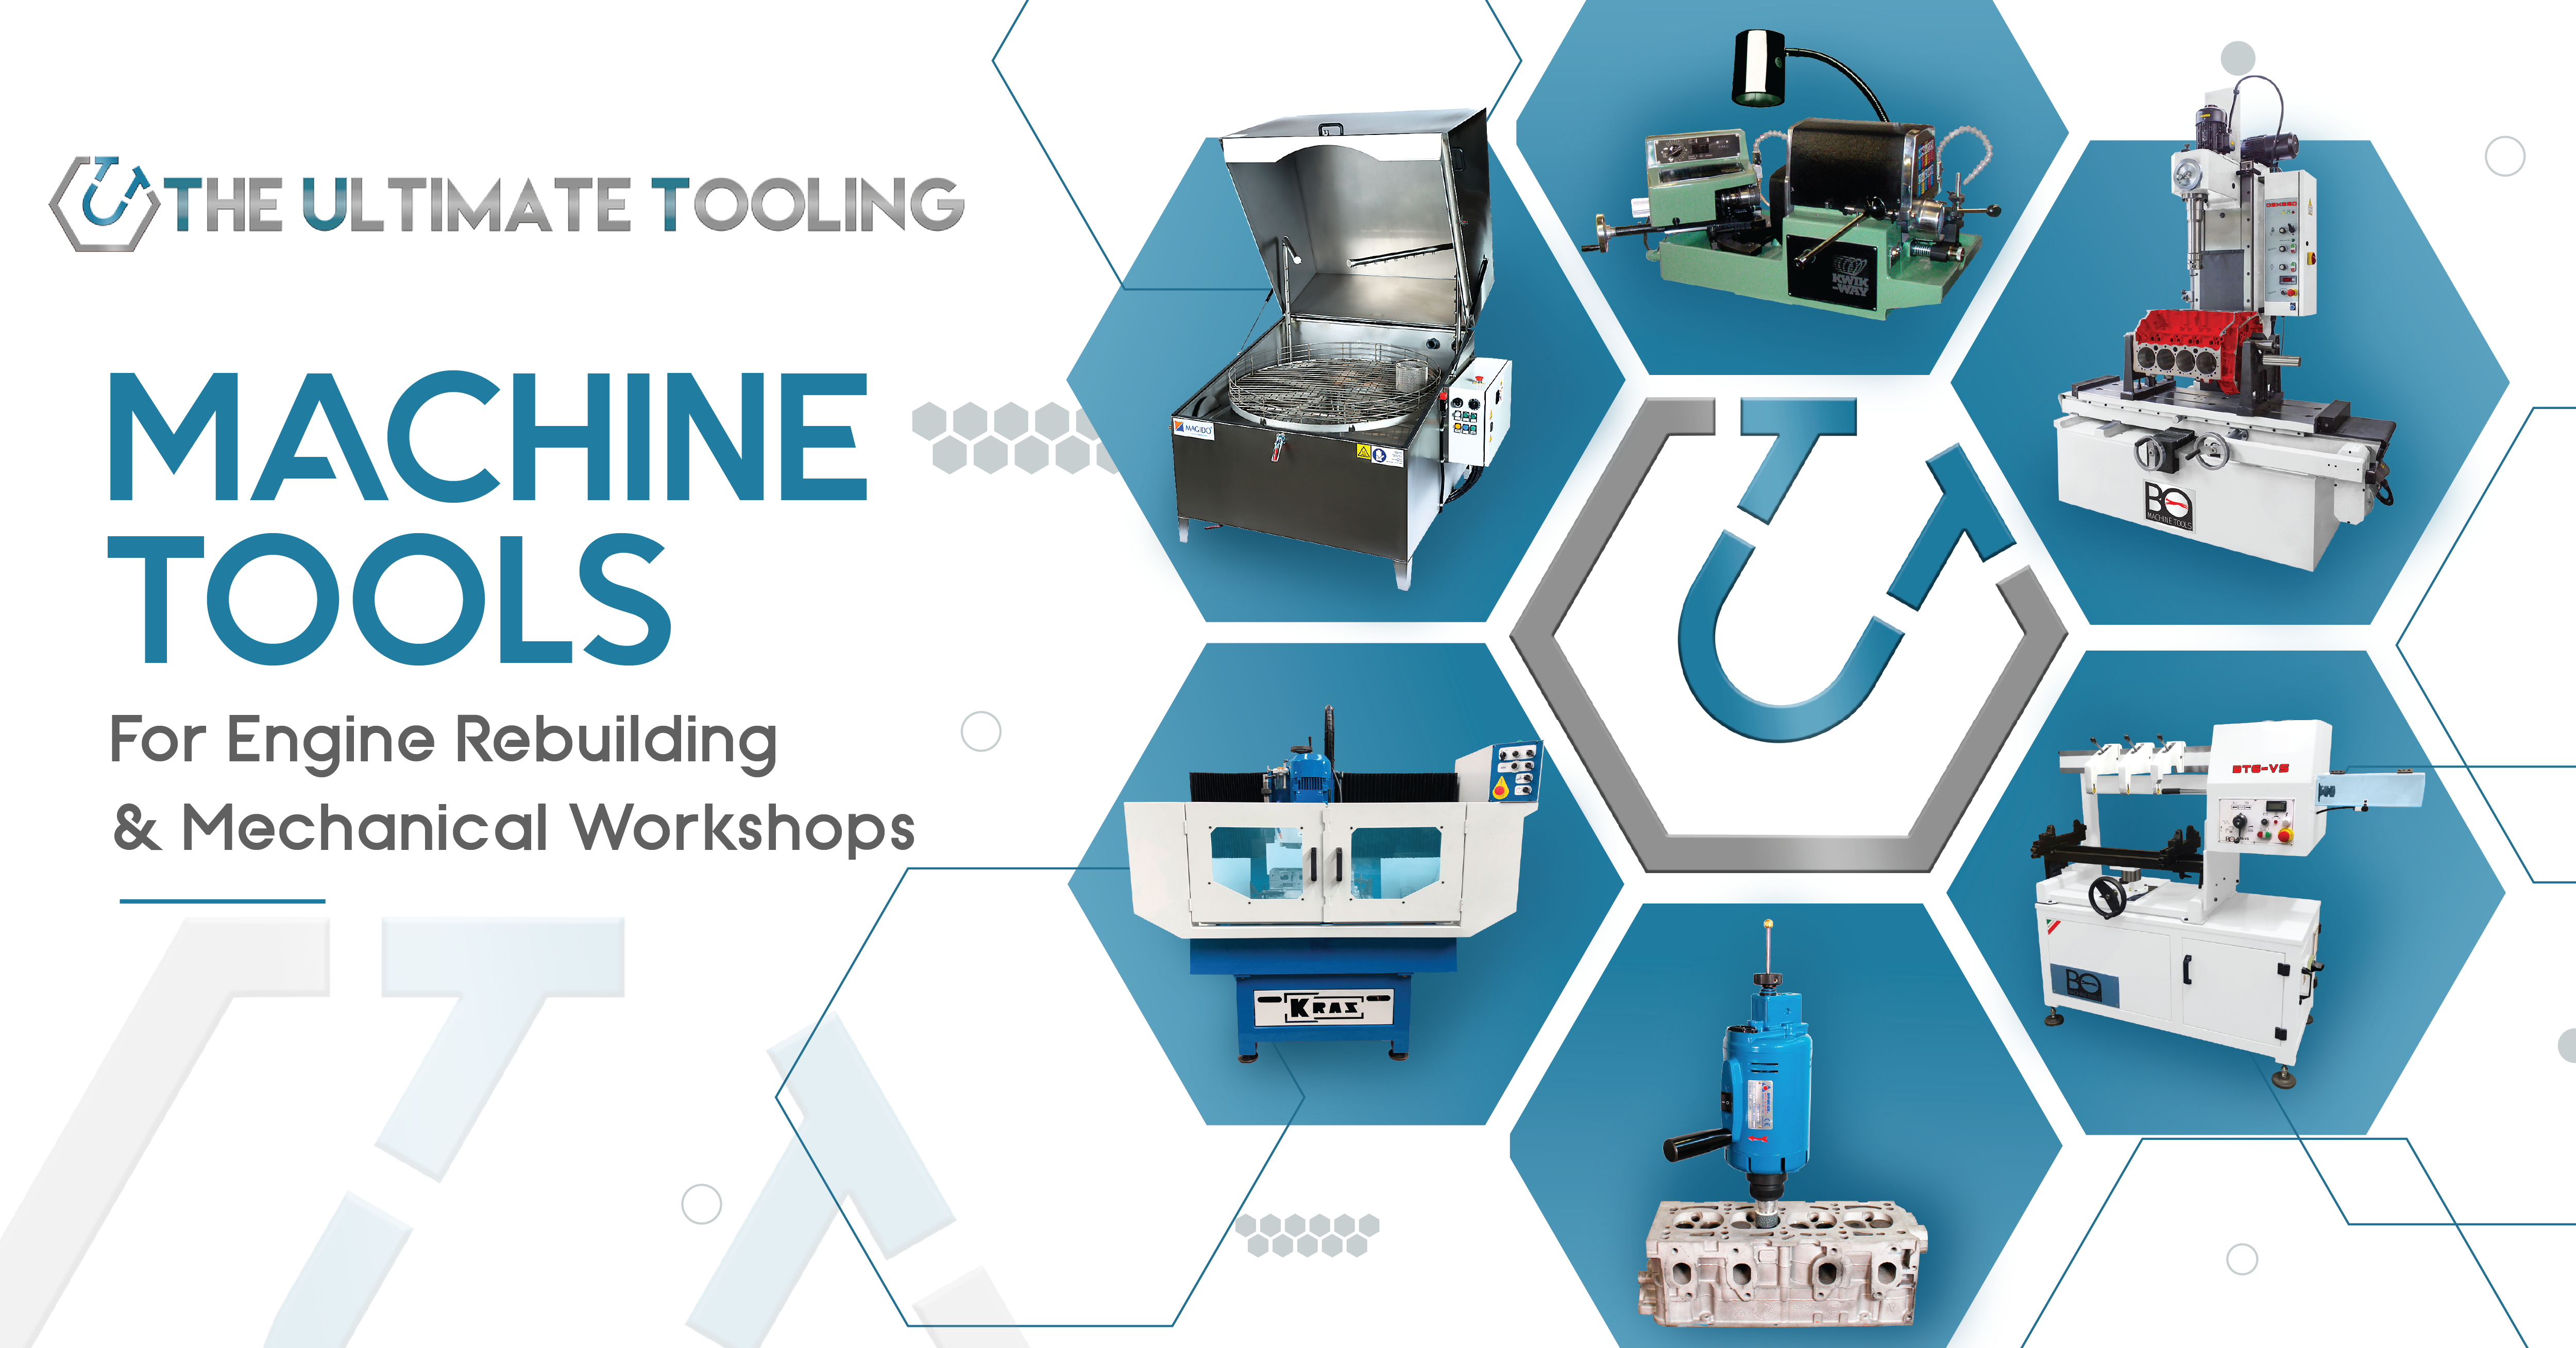 The Ultimate Tooling - Banner Industrial and Automotive Machinery Sell